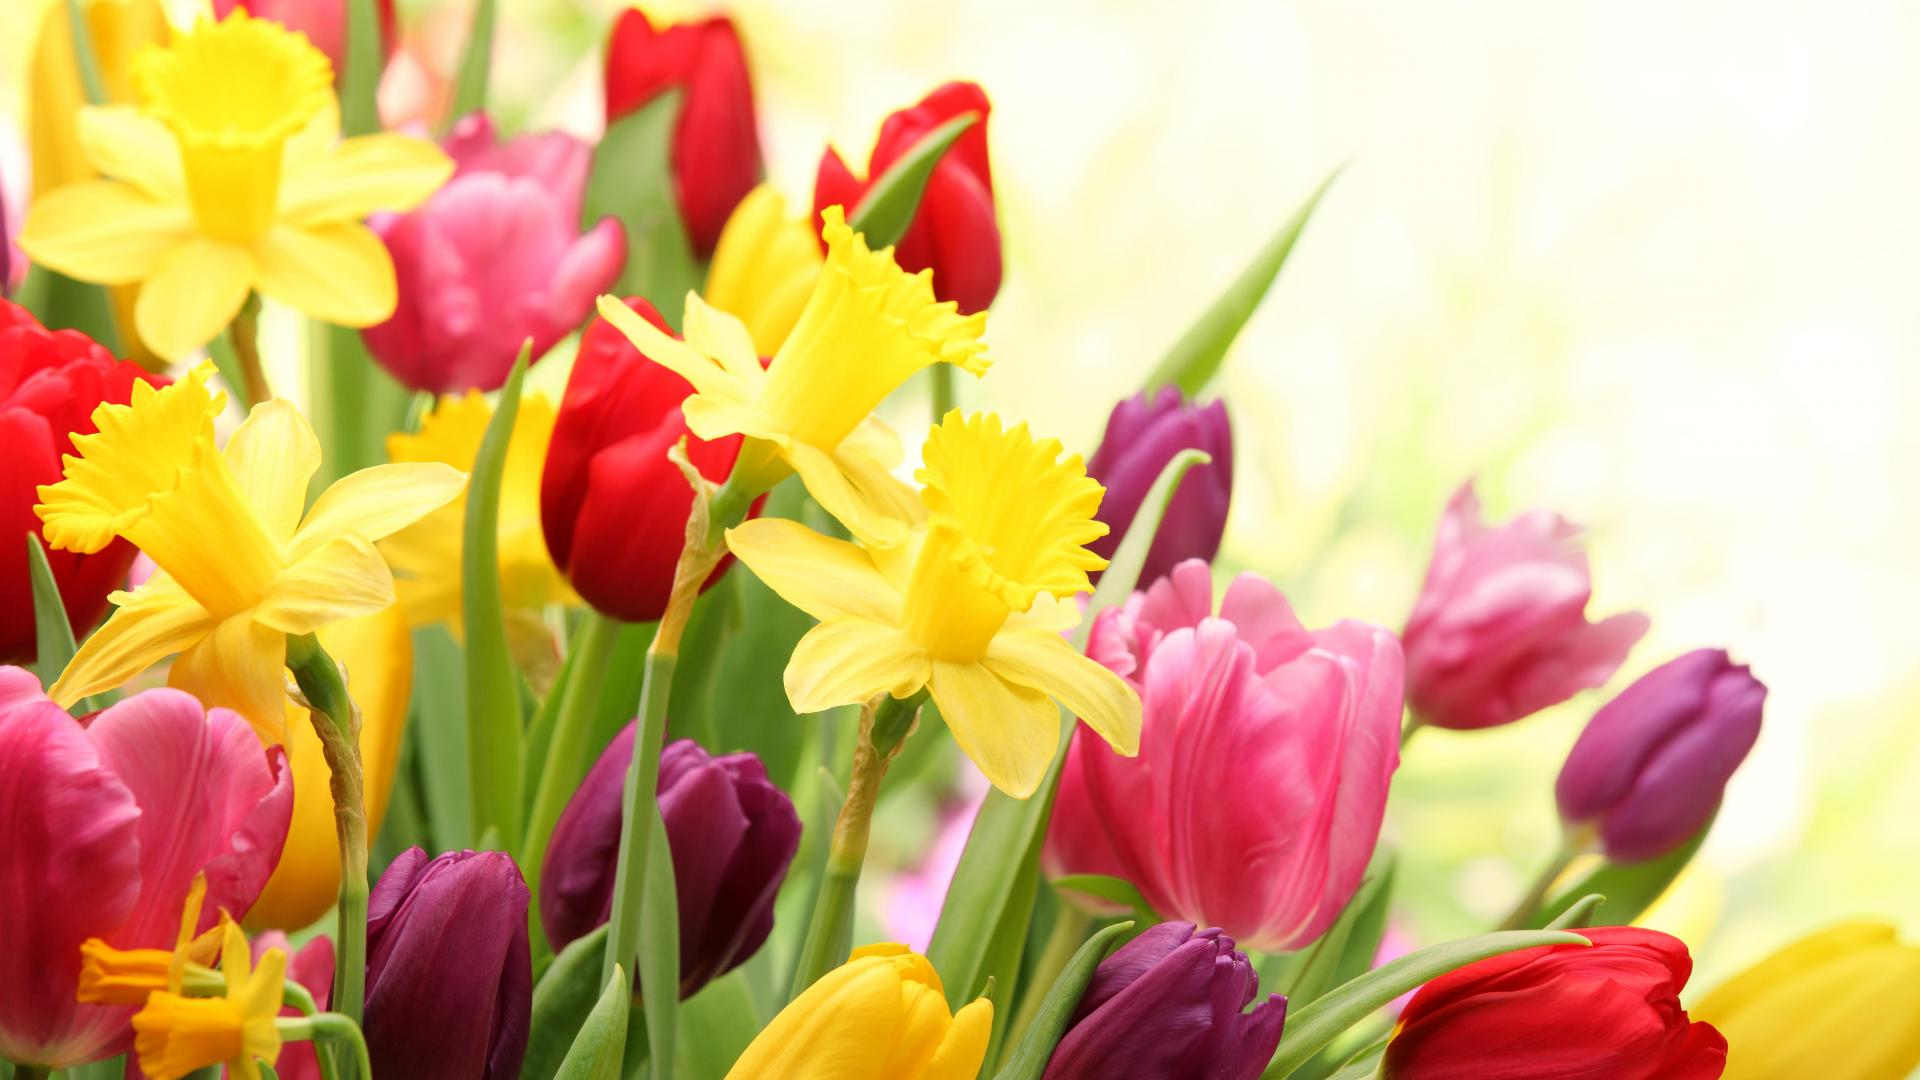 Wallpaper Tags: colorful nature tulips flowers pink red daffodils yellow spring fresh purple